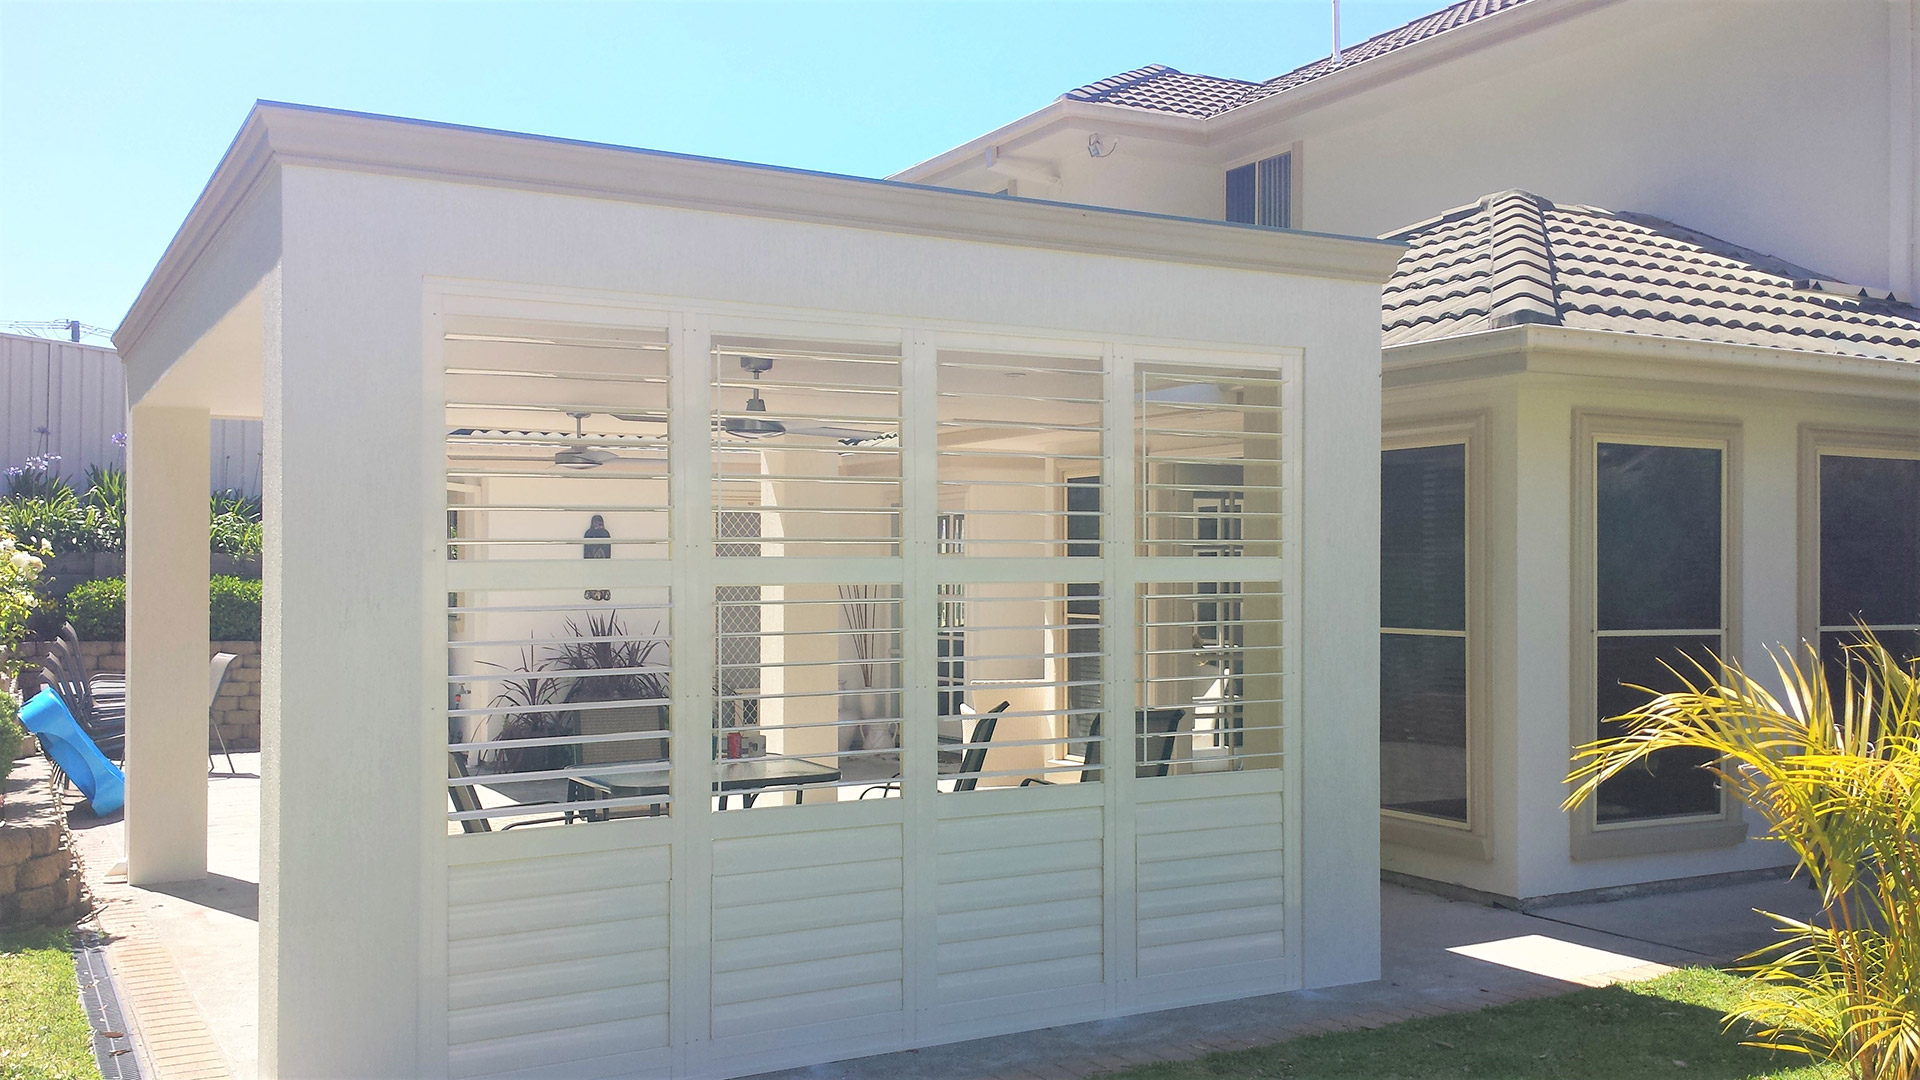 Patio Shutters - Wall Partition using Ambient Shutters